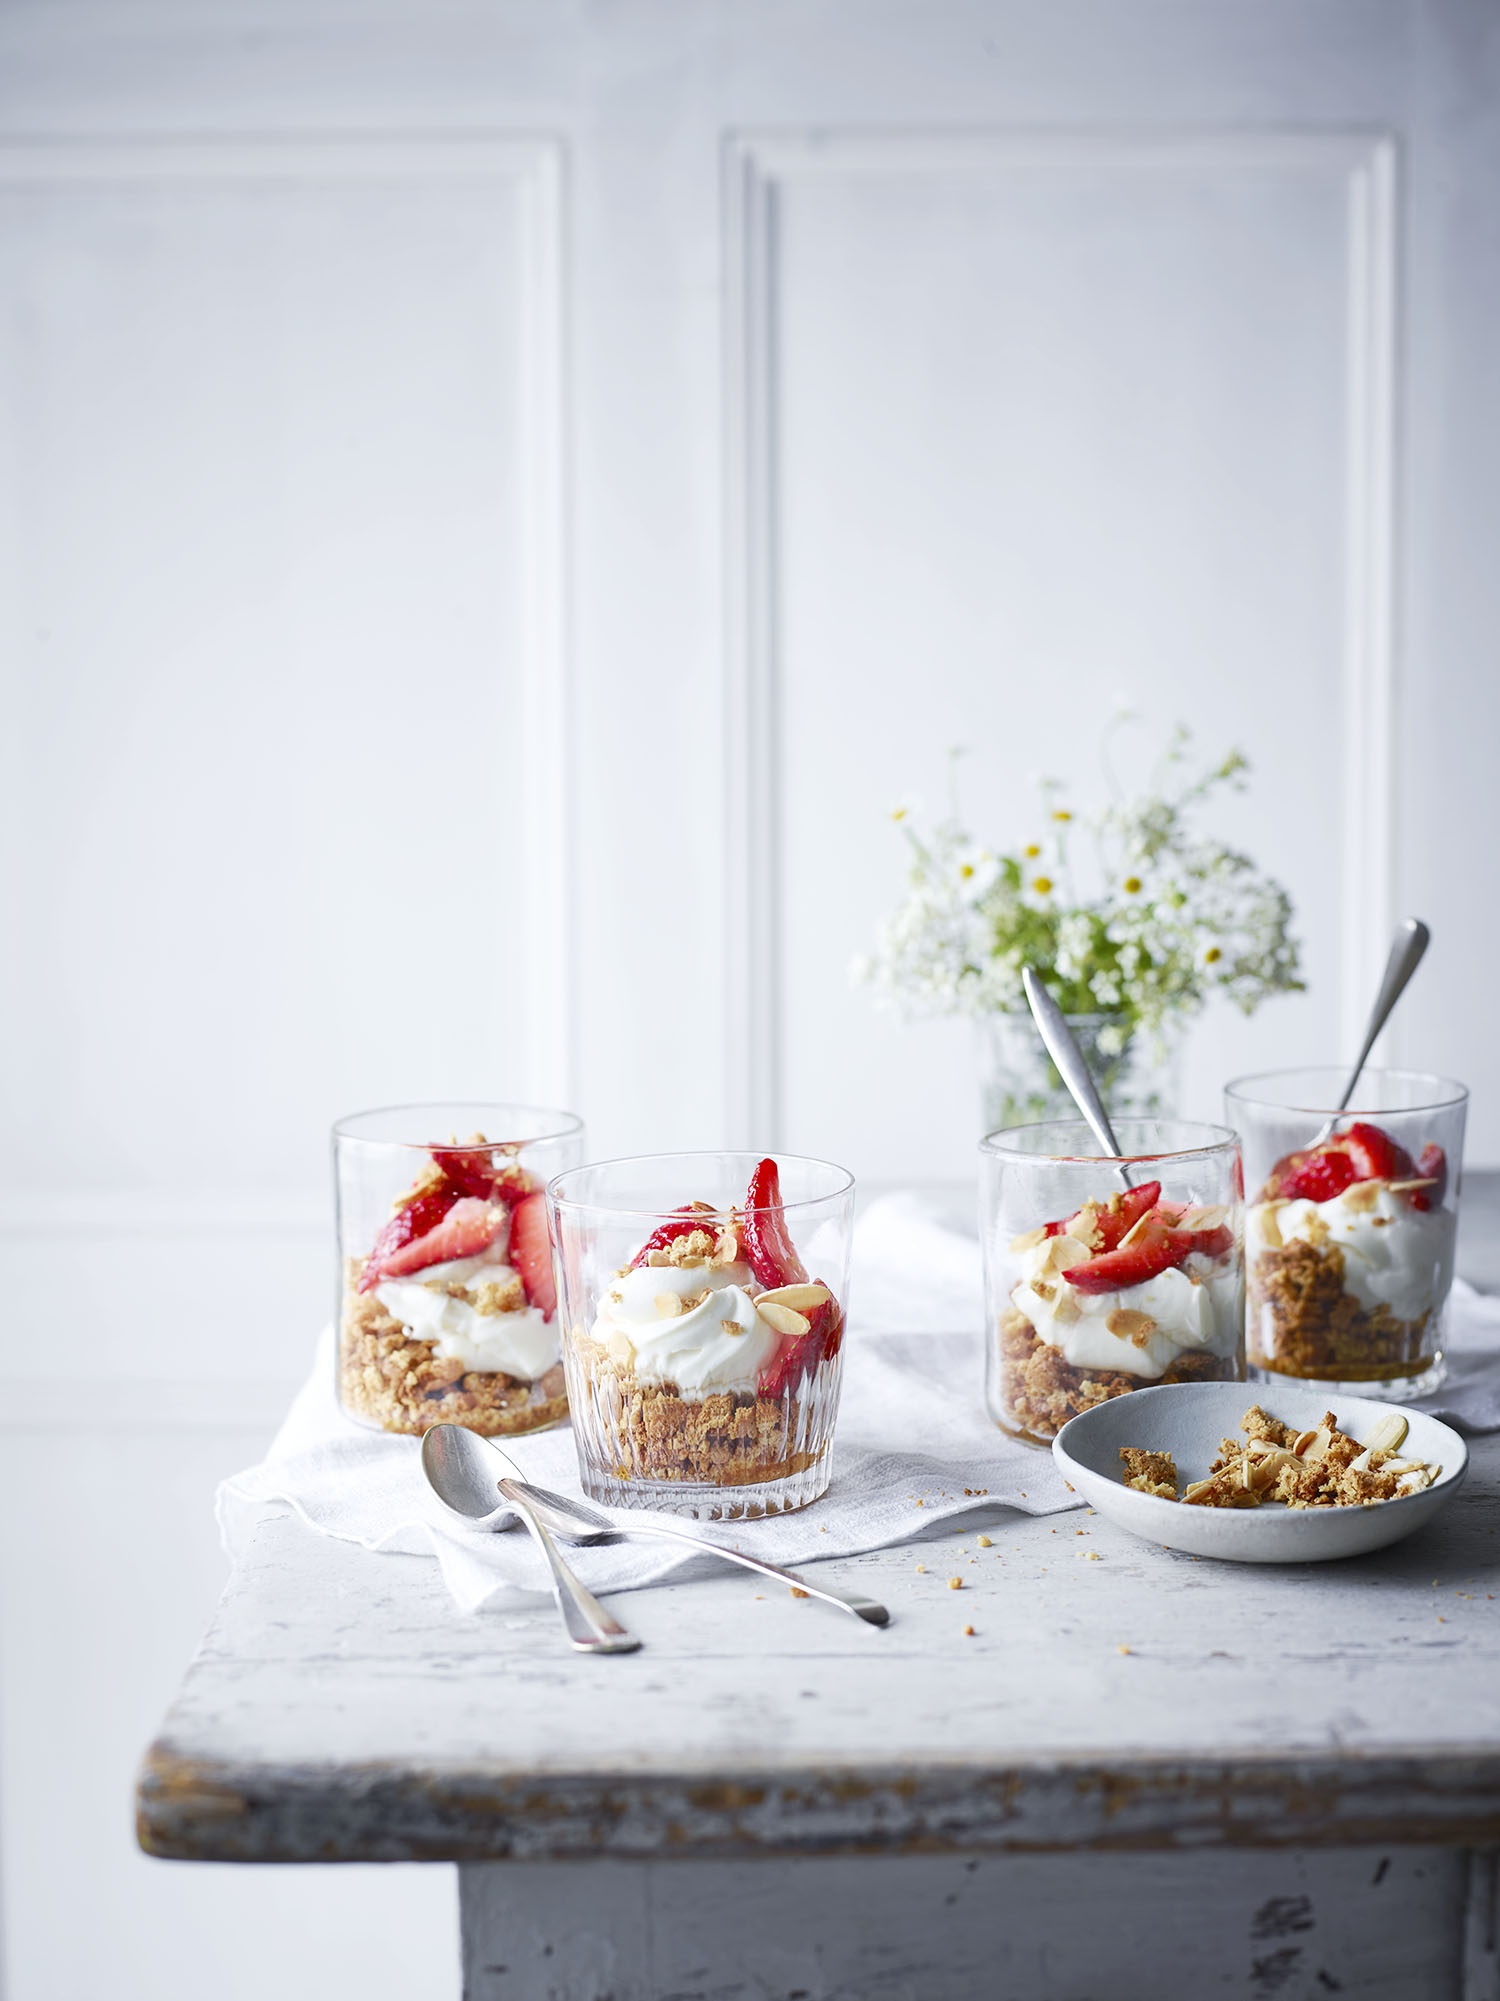 Strawberry Cheesecake Pots	Photograph Maja Smend Prop Styling Olivia Wardle Recipe Olivia Spurrell